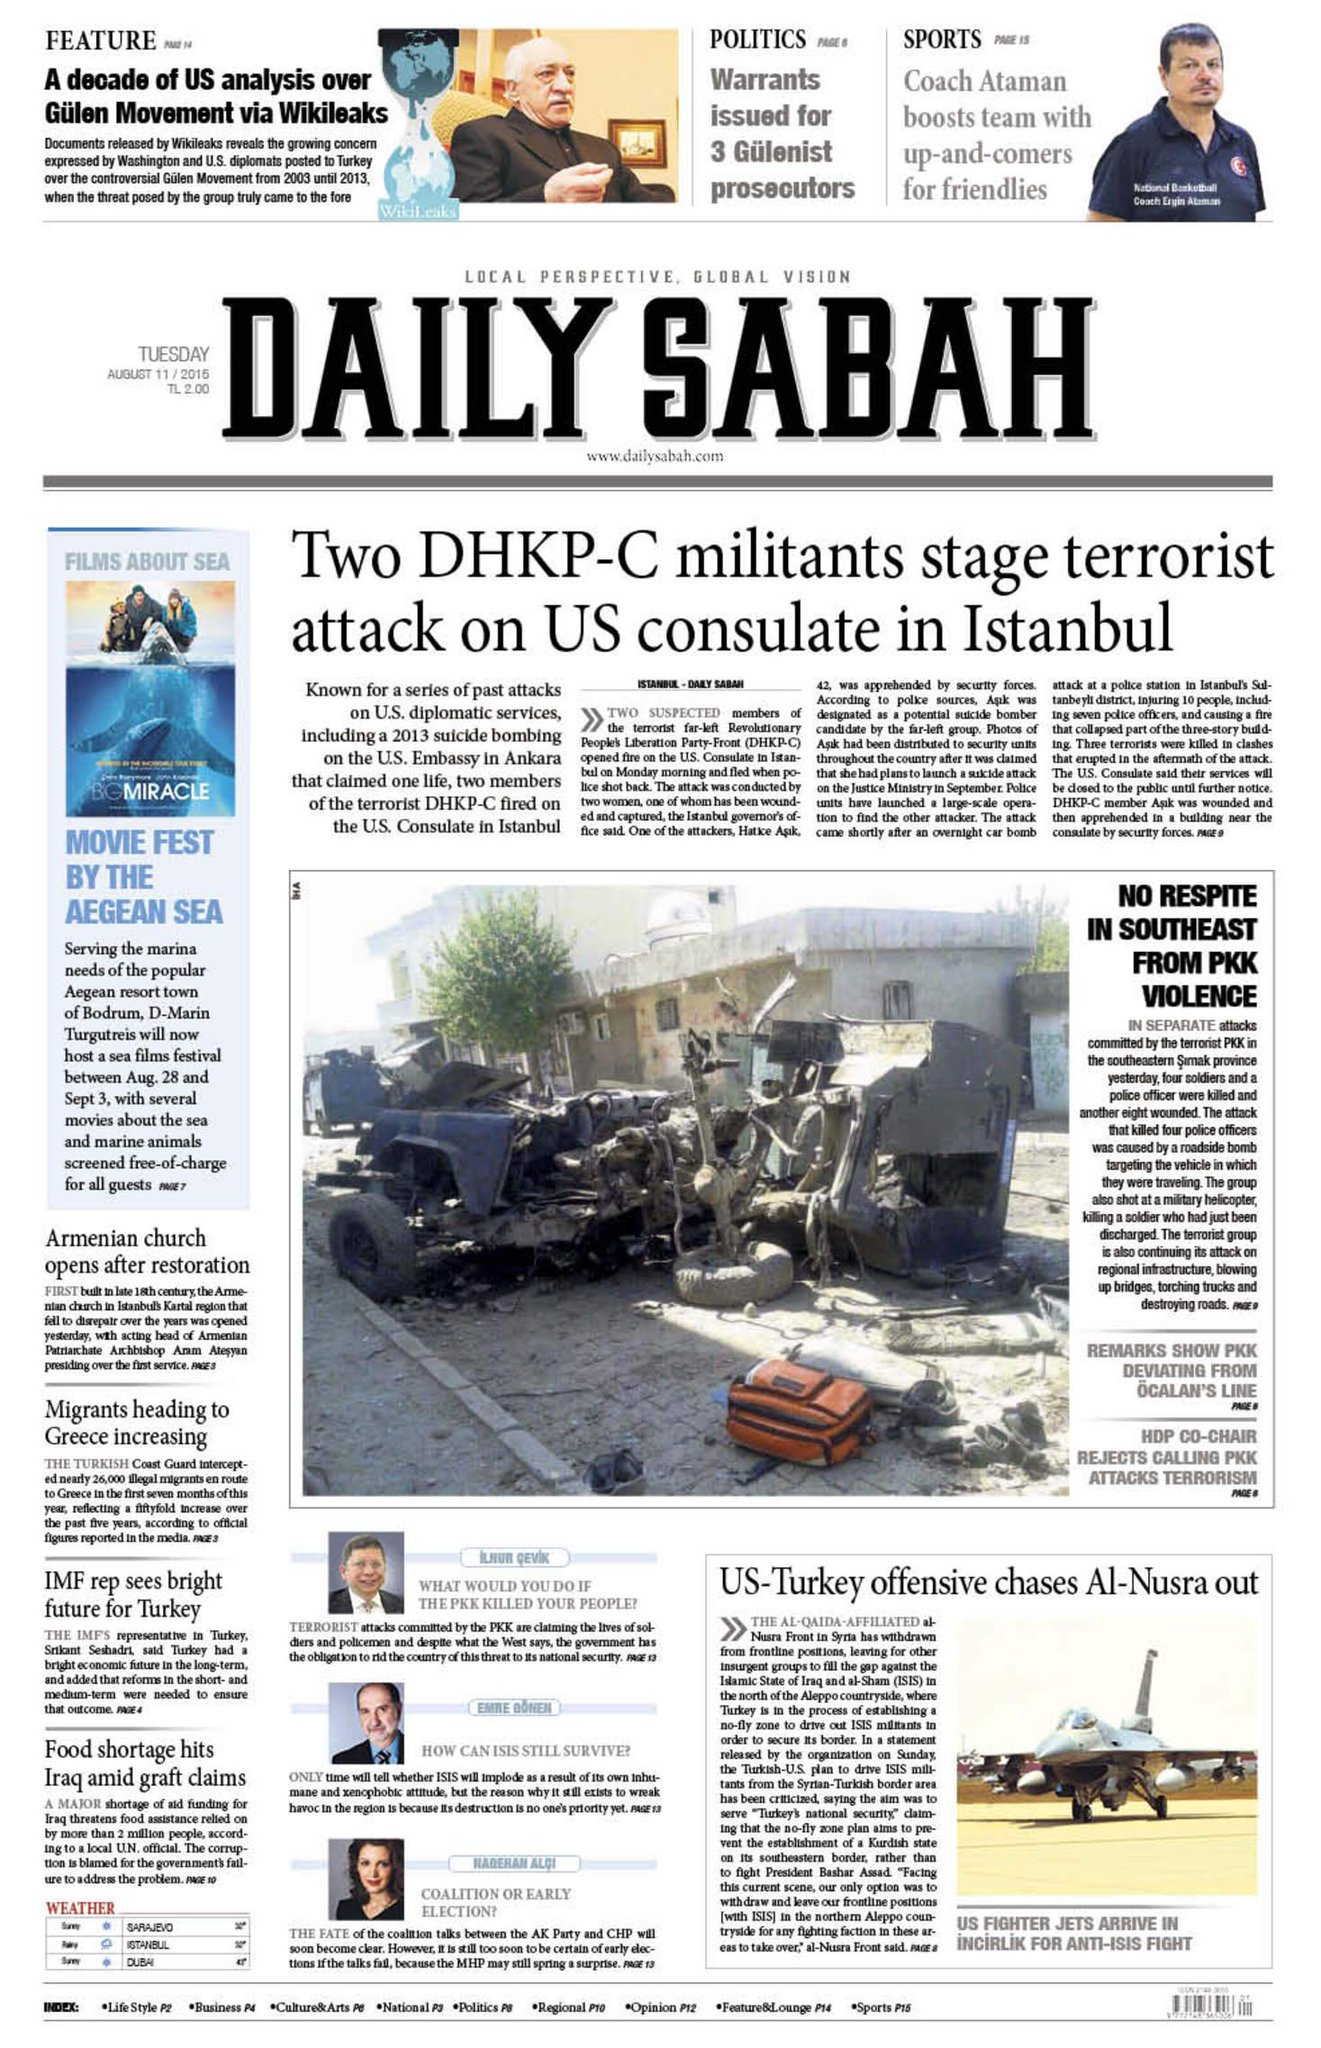 DAILY SABAH on Twitter: